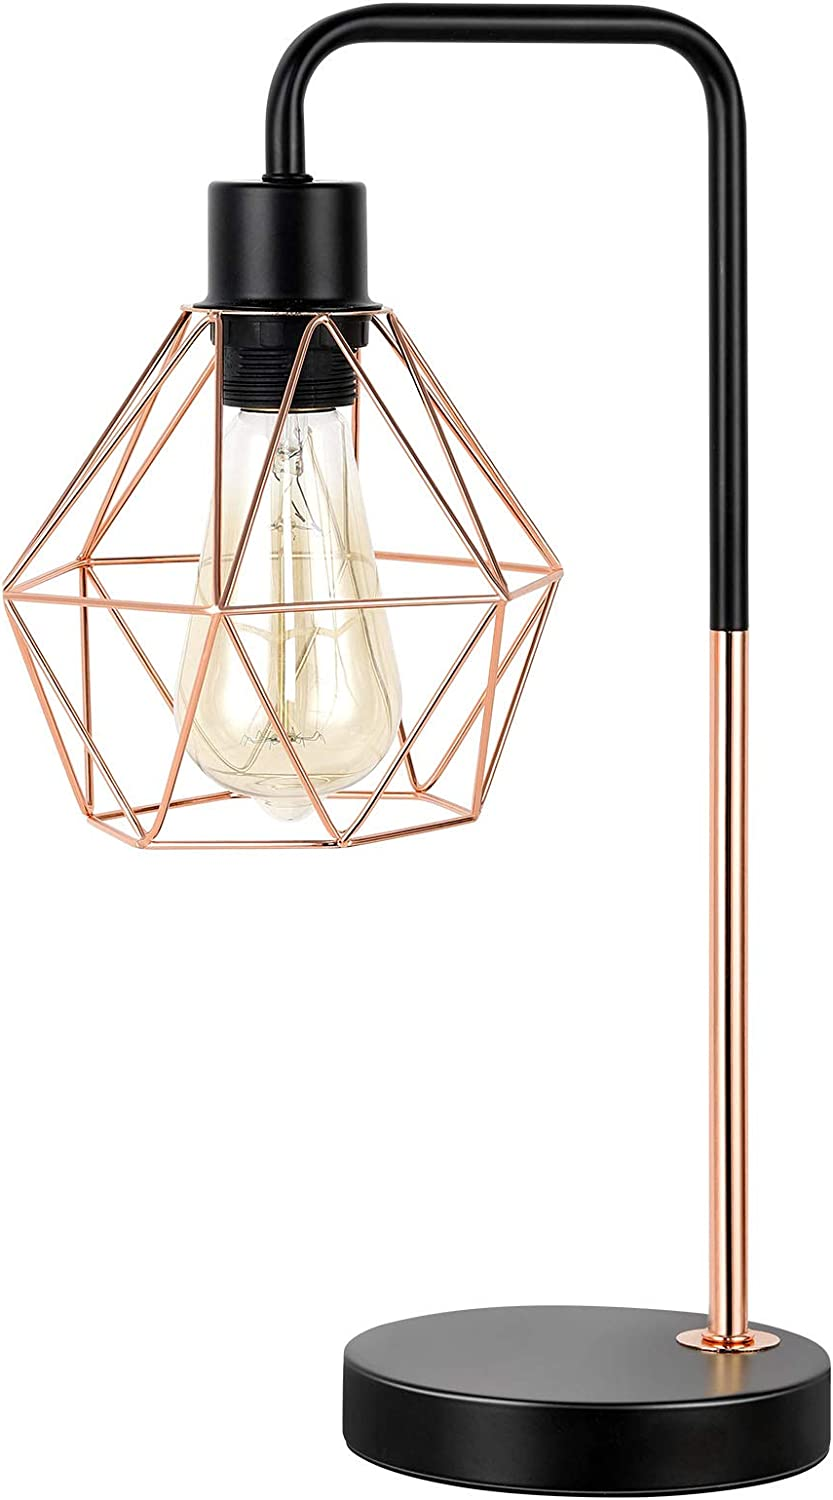 Modern Industrial Table Lamp, Delicate Design Desk Lamp with Metal Geometric Cage Shade, Bedside Lamp for Nightstand Home Decor, Reading Lamp Light Fixture for Office, Bedroom, Living Room, Rose Gold